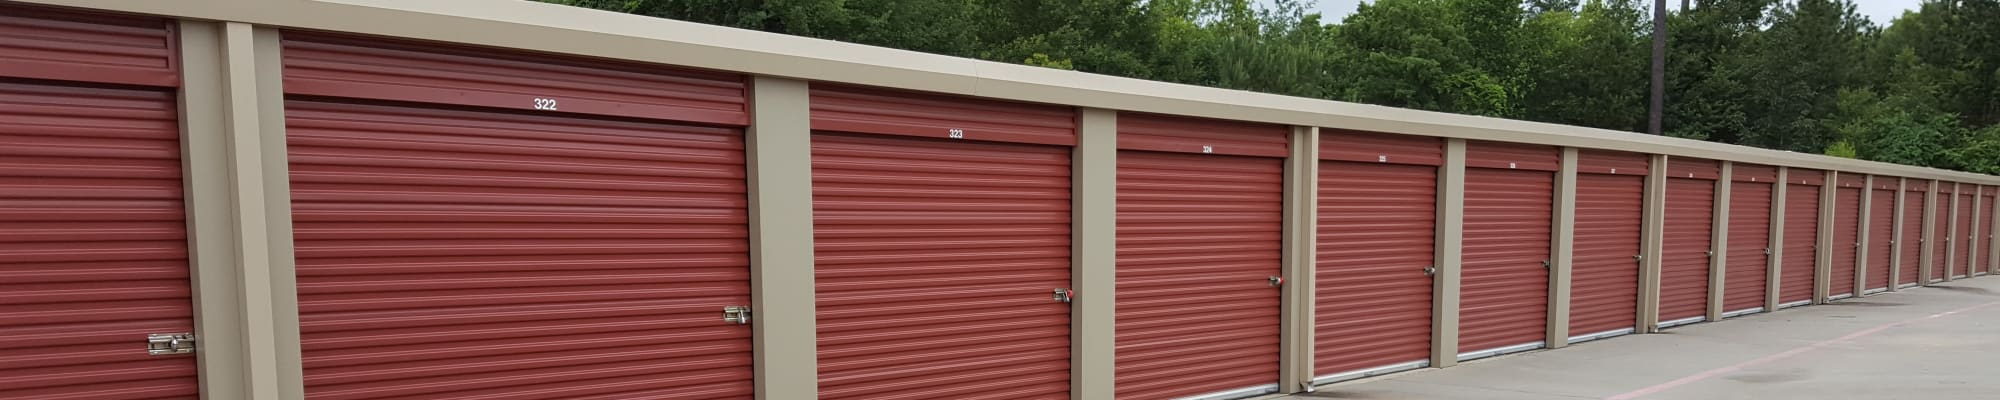 Unit sizes and prices at Lockaway Storage in Texarkana, Texas